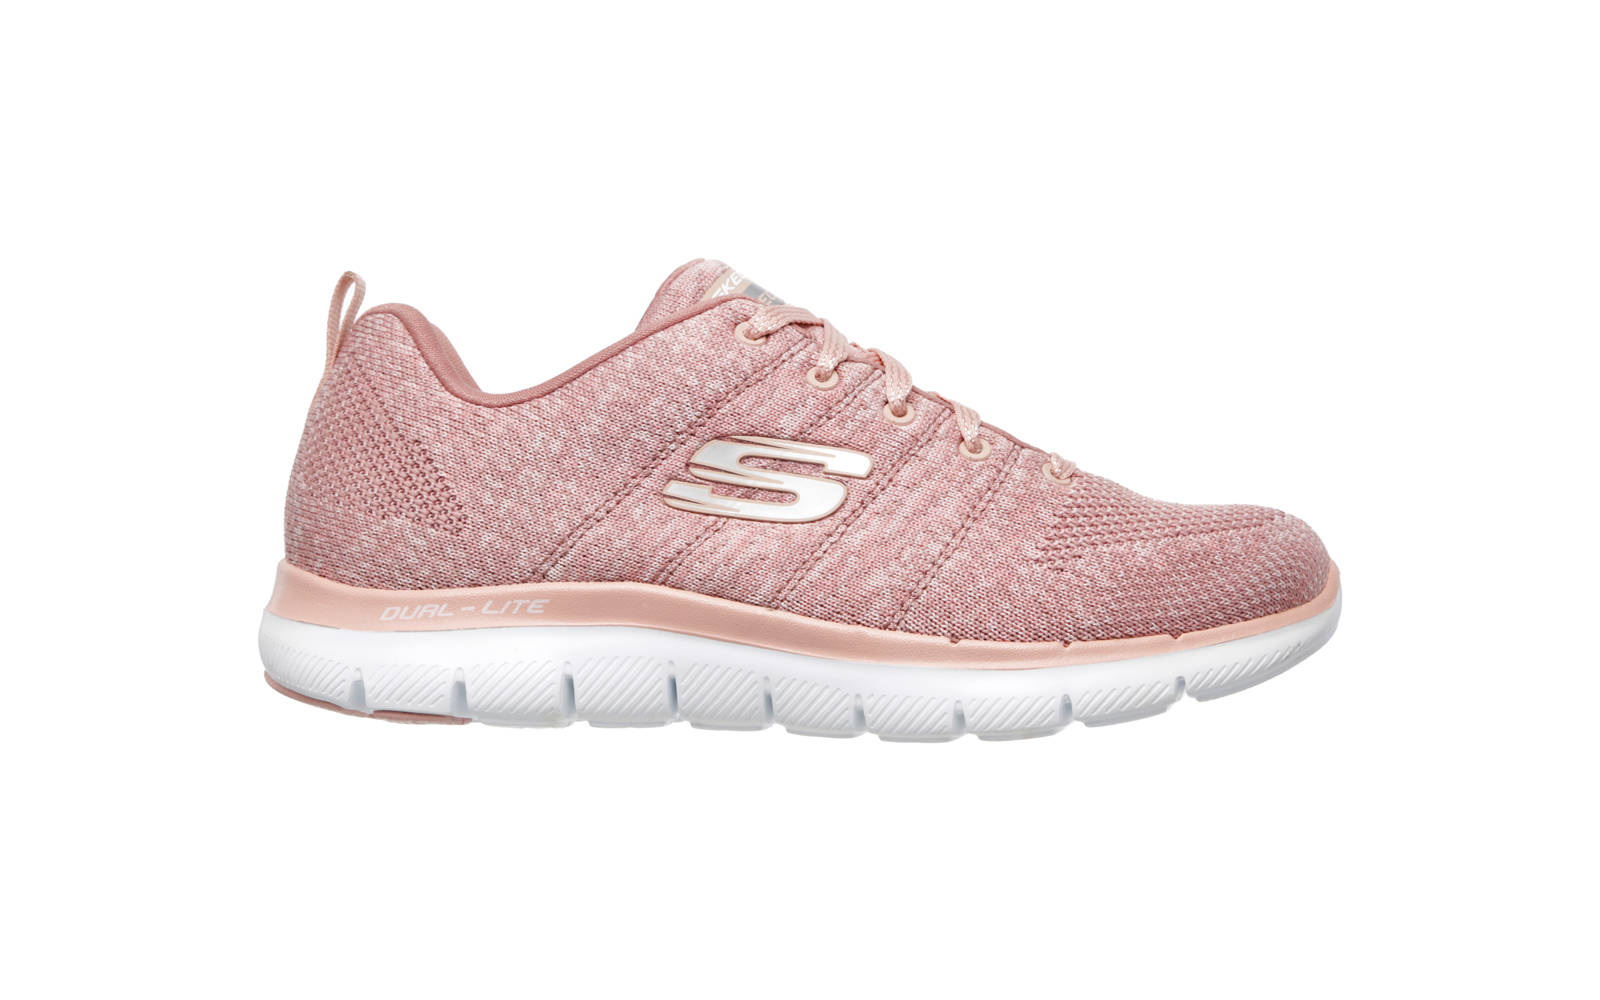 "SKECKERS  leggere ""flex appeal 2.0"" rosa, ideali per fitness euro 69,90 www.it.skechers.com"